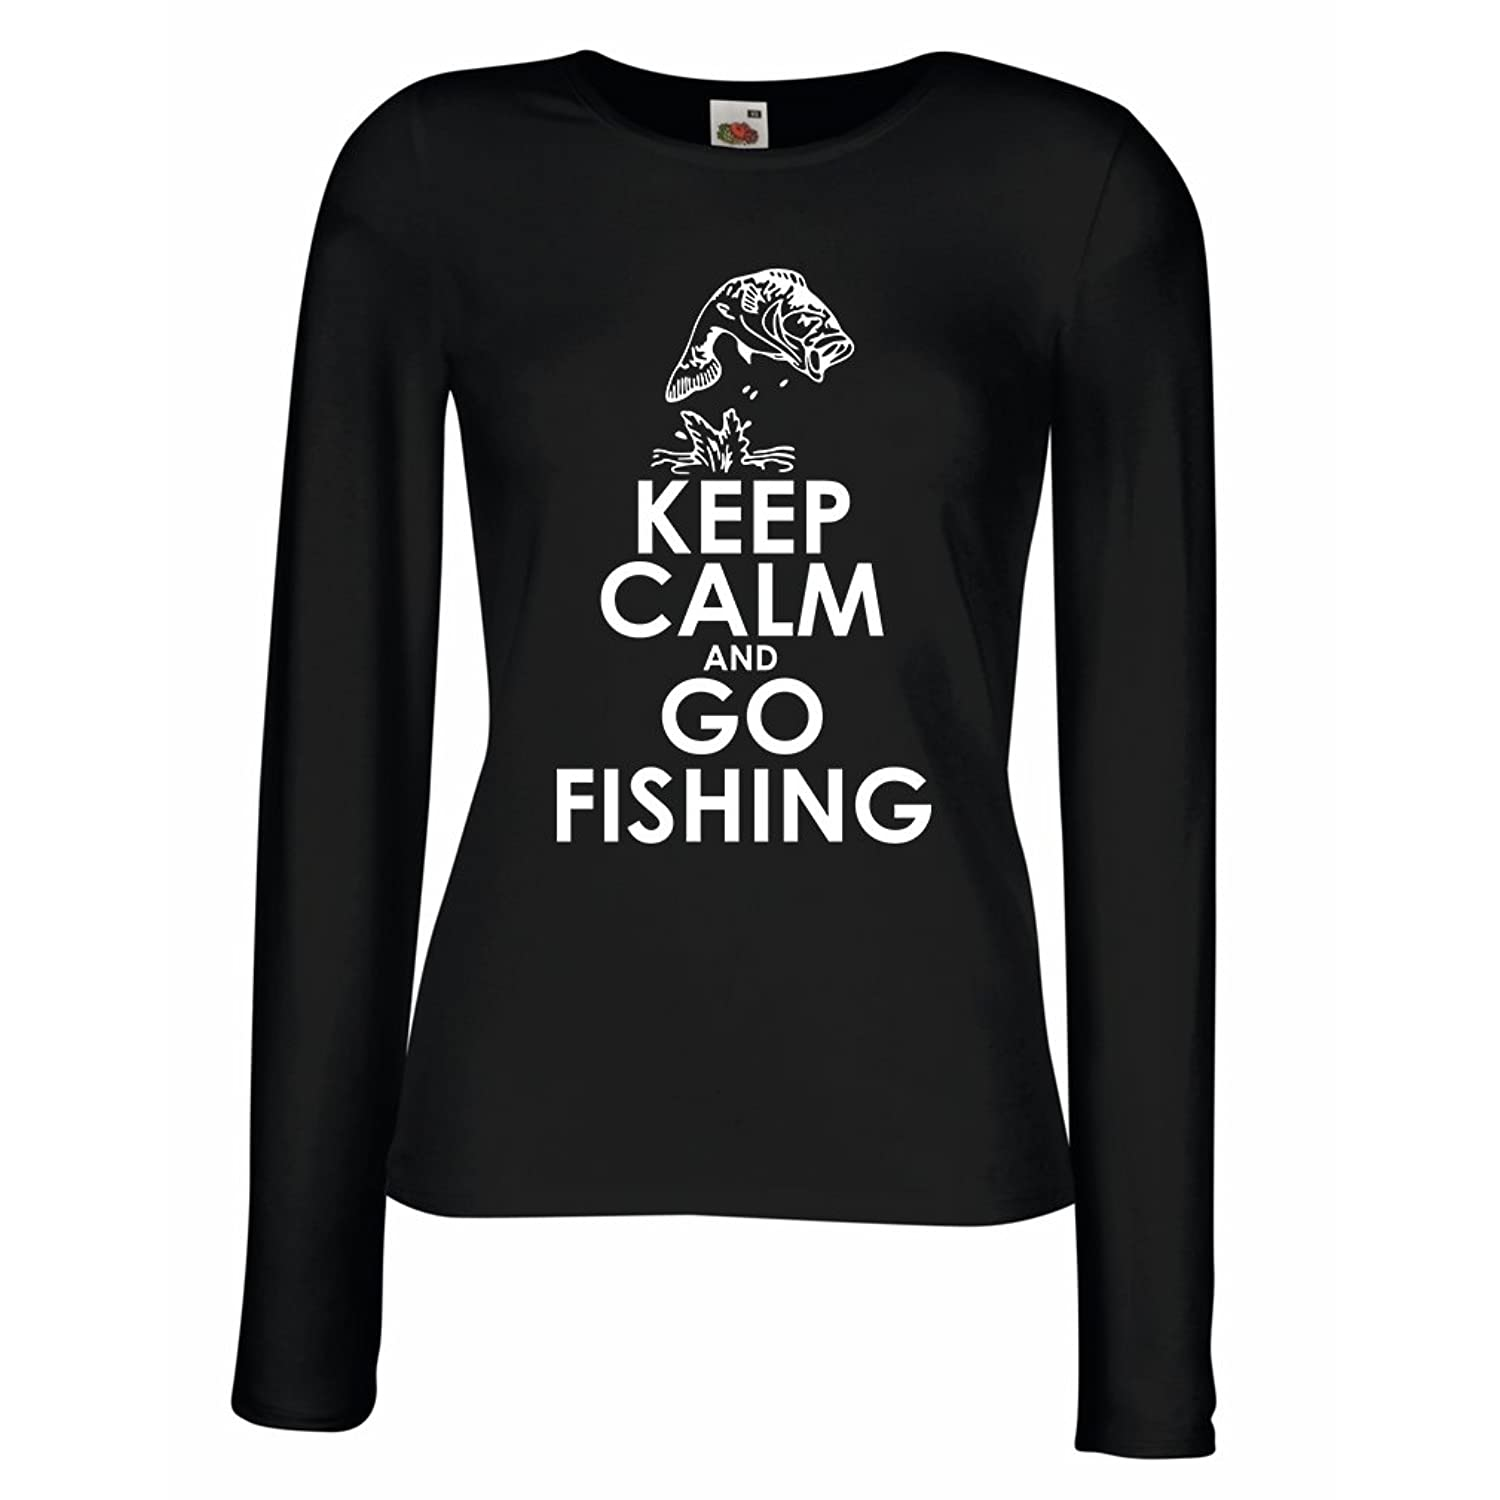 0e1580ed6 Amazon.com: T shirts for women Long sleeve Fishing apparel,fishing shirts:  Clothing